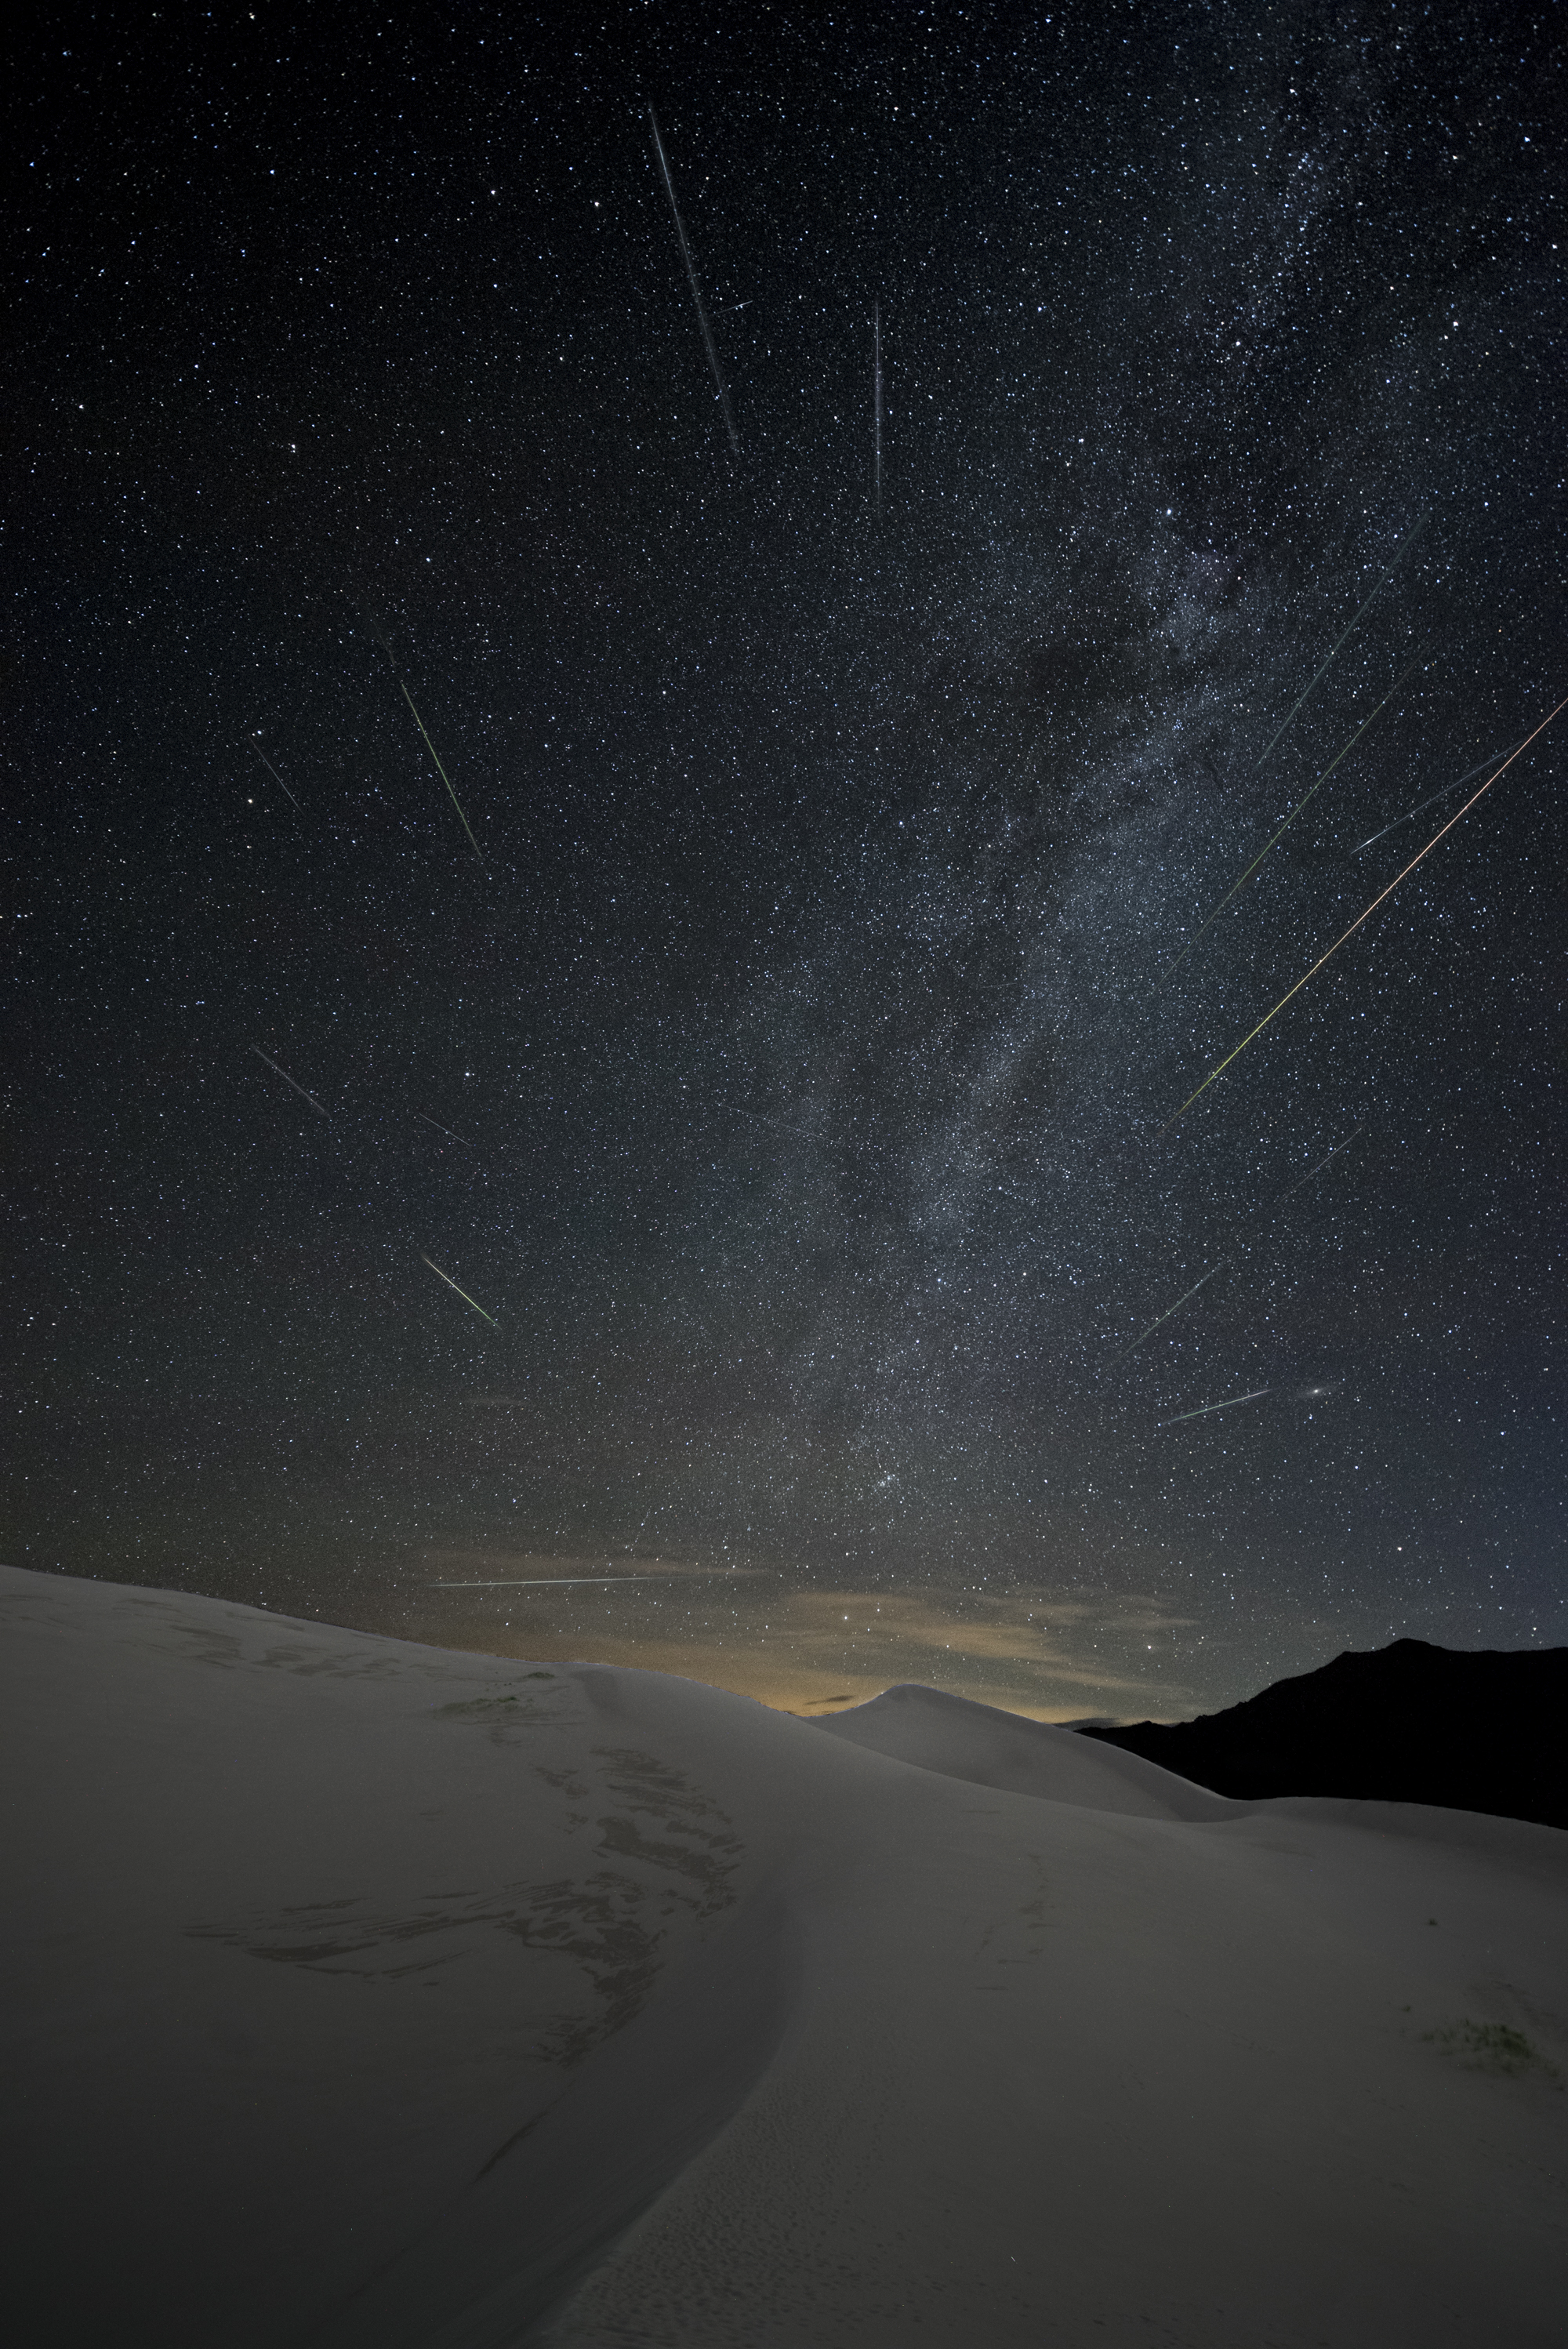 Great Sand Dunes National Park, Colorado.  Nikon D750 ,  15mm Zeiss Distagon f/2.8  lens. 234 images at 22 seconds, f/2.8, ISO 6400, plus a single exposure at 382 seconds, ISO 2000 for the landscape after moonrise. Photo © 2017 Matt Hill.